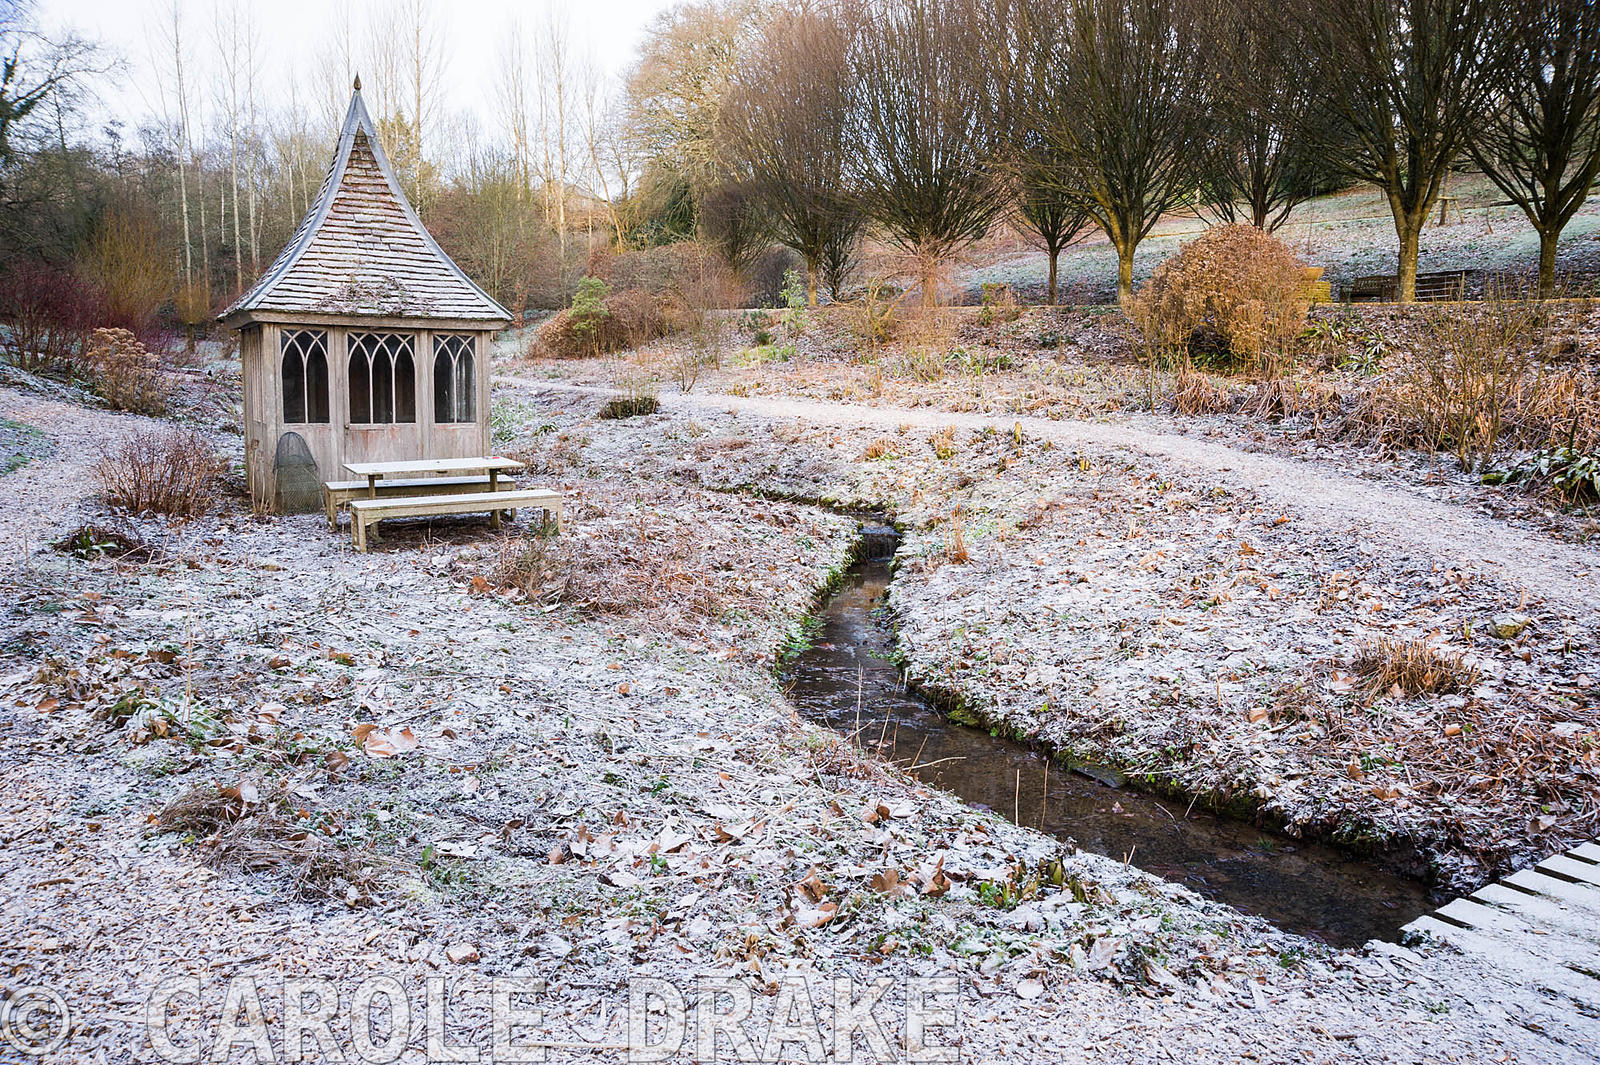 Dormant bog garden with an icing of snow around a wooden summerhouse.